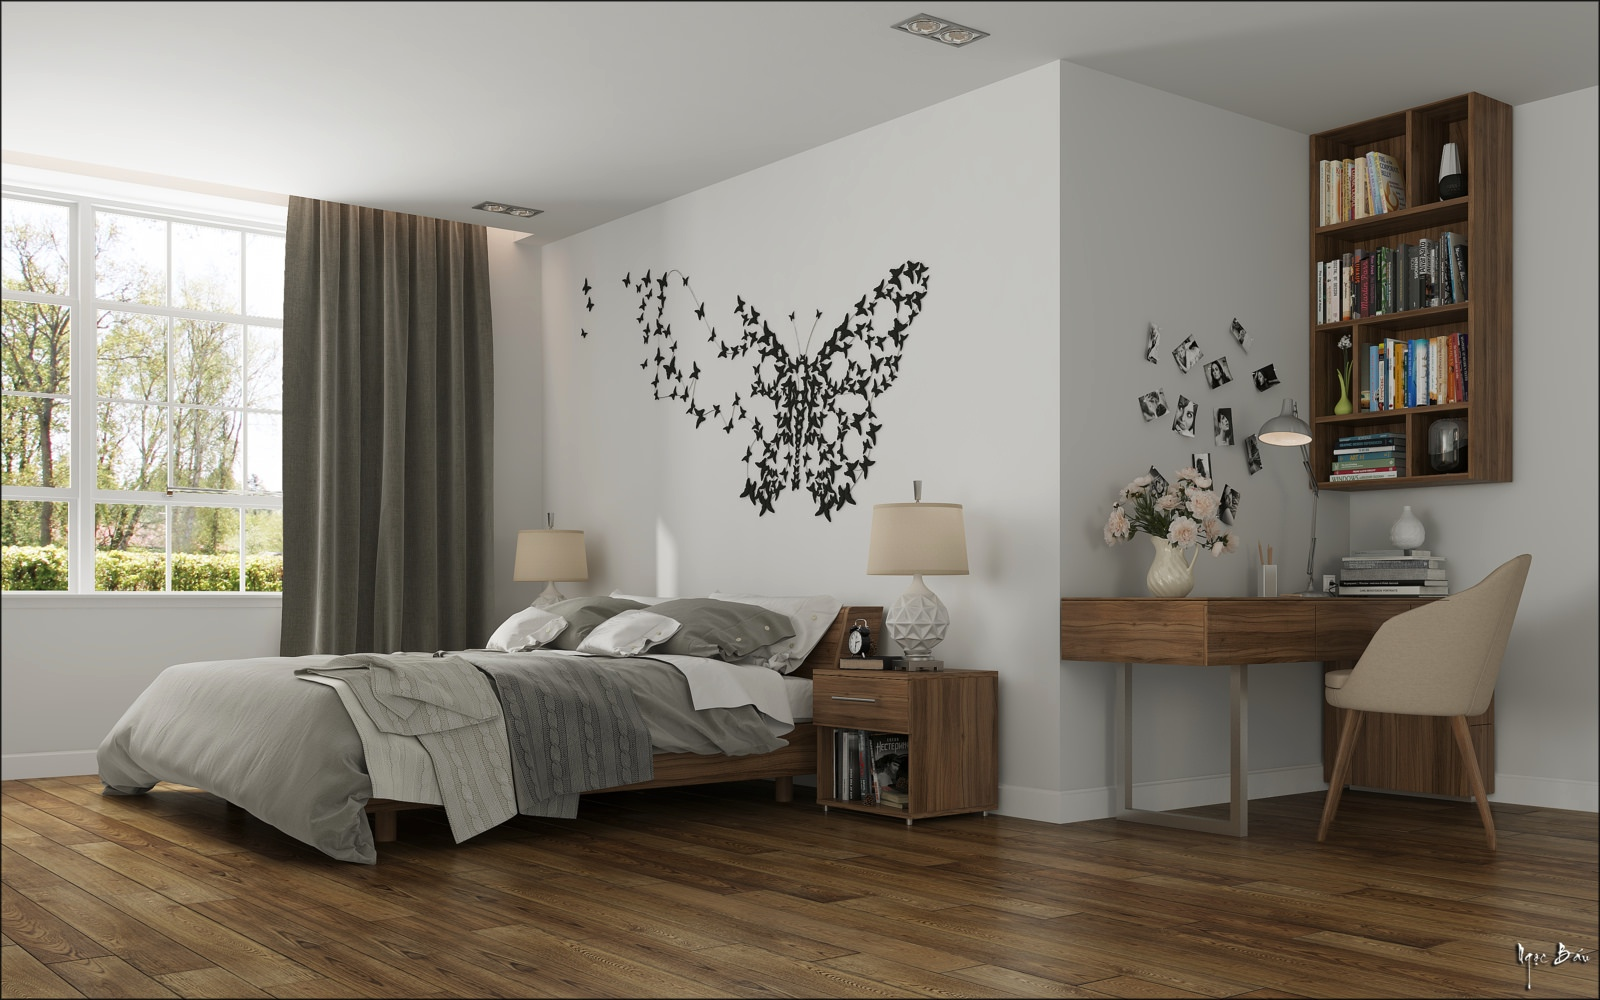 Bedroom butterfly wall art interior design ideas for Decoration murale vannerie